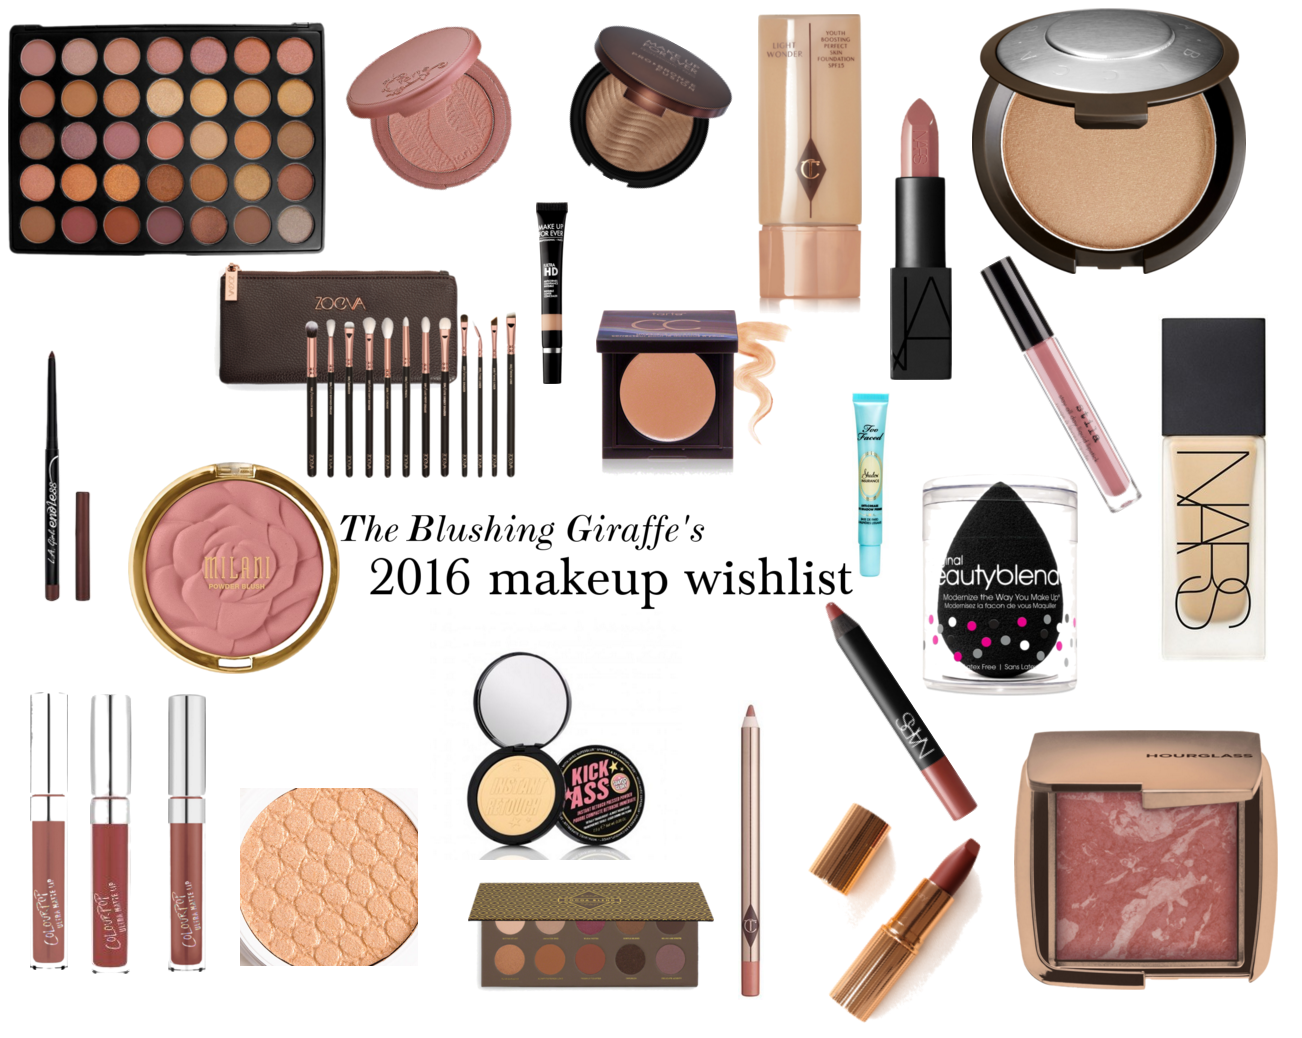 2016 makeup wishlist